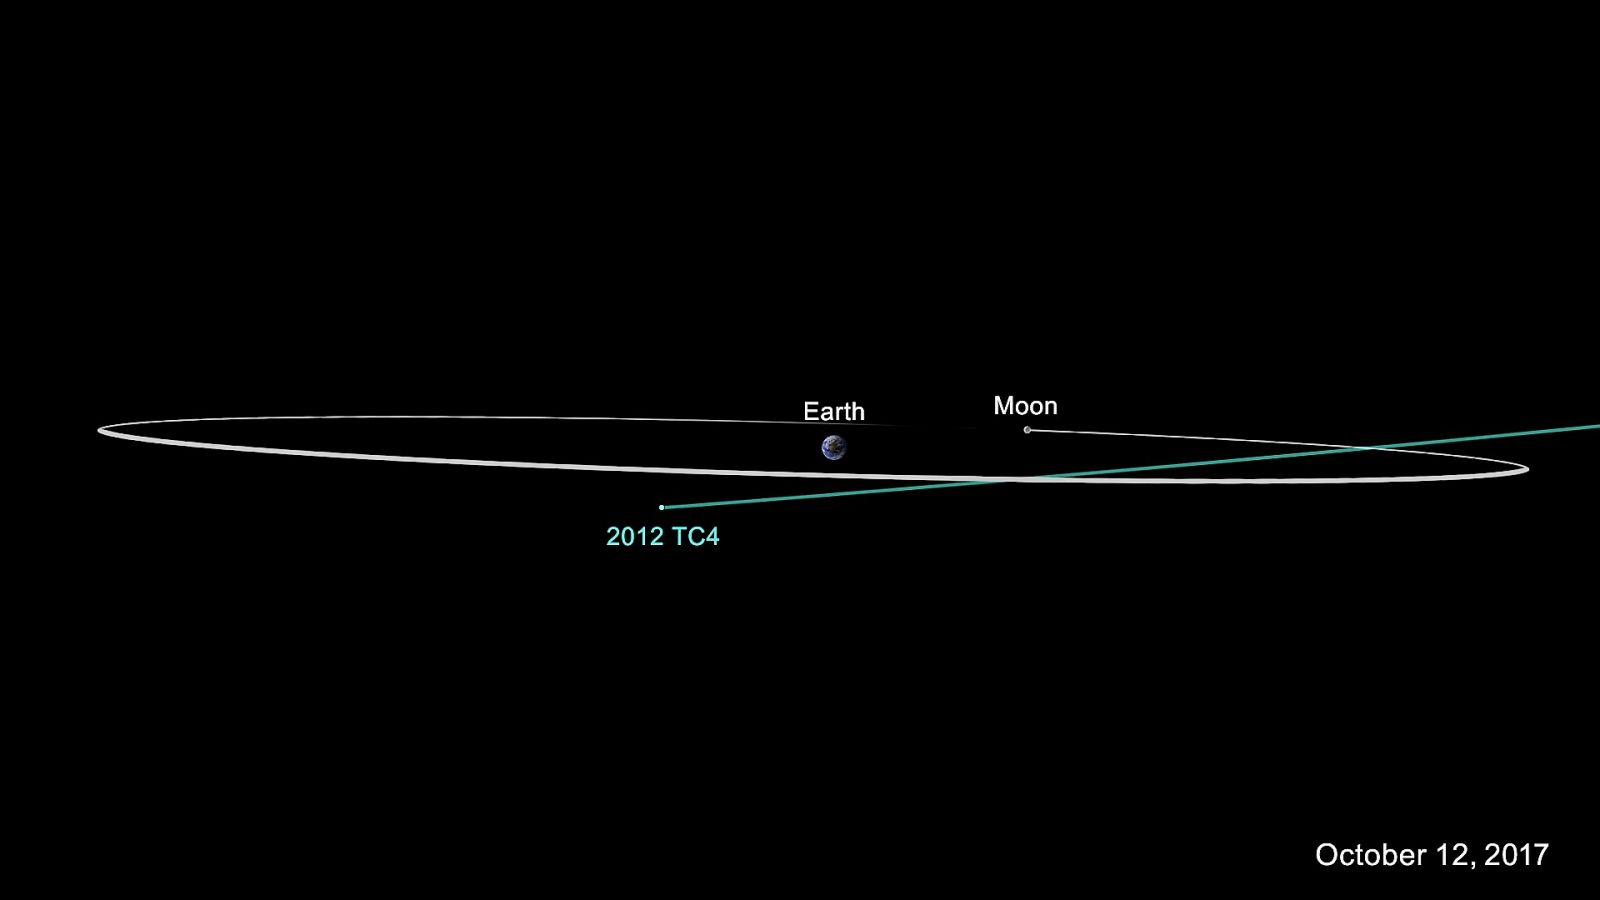 Asteroid-2012-TC4 / Earth-Moon orbits